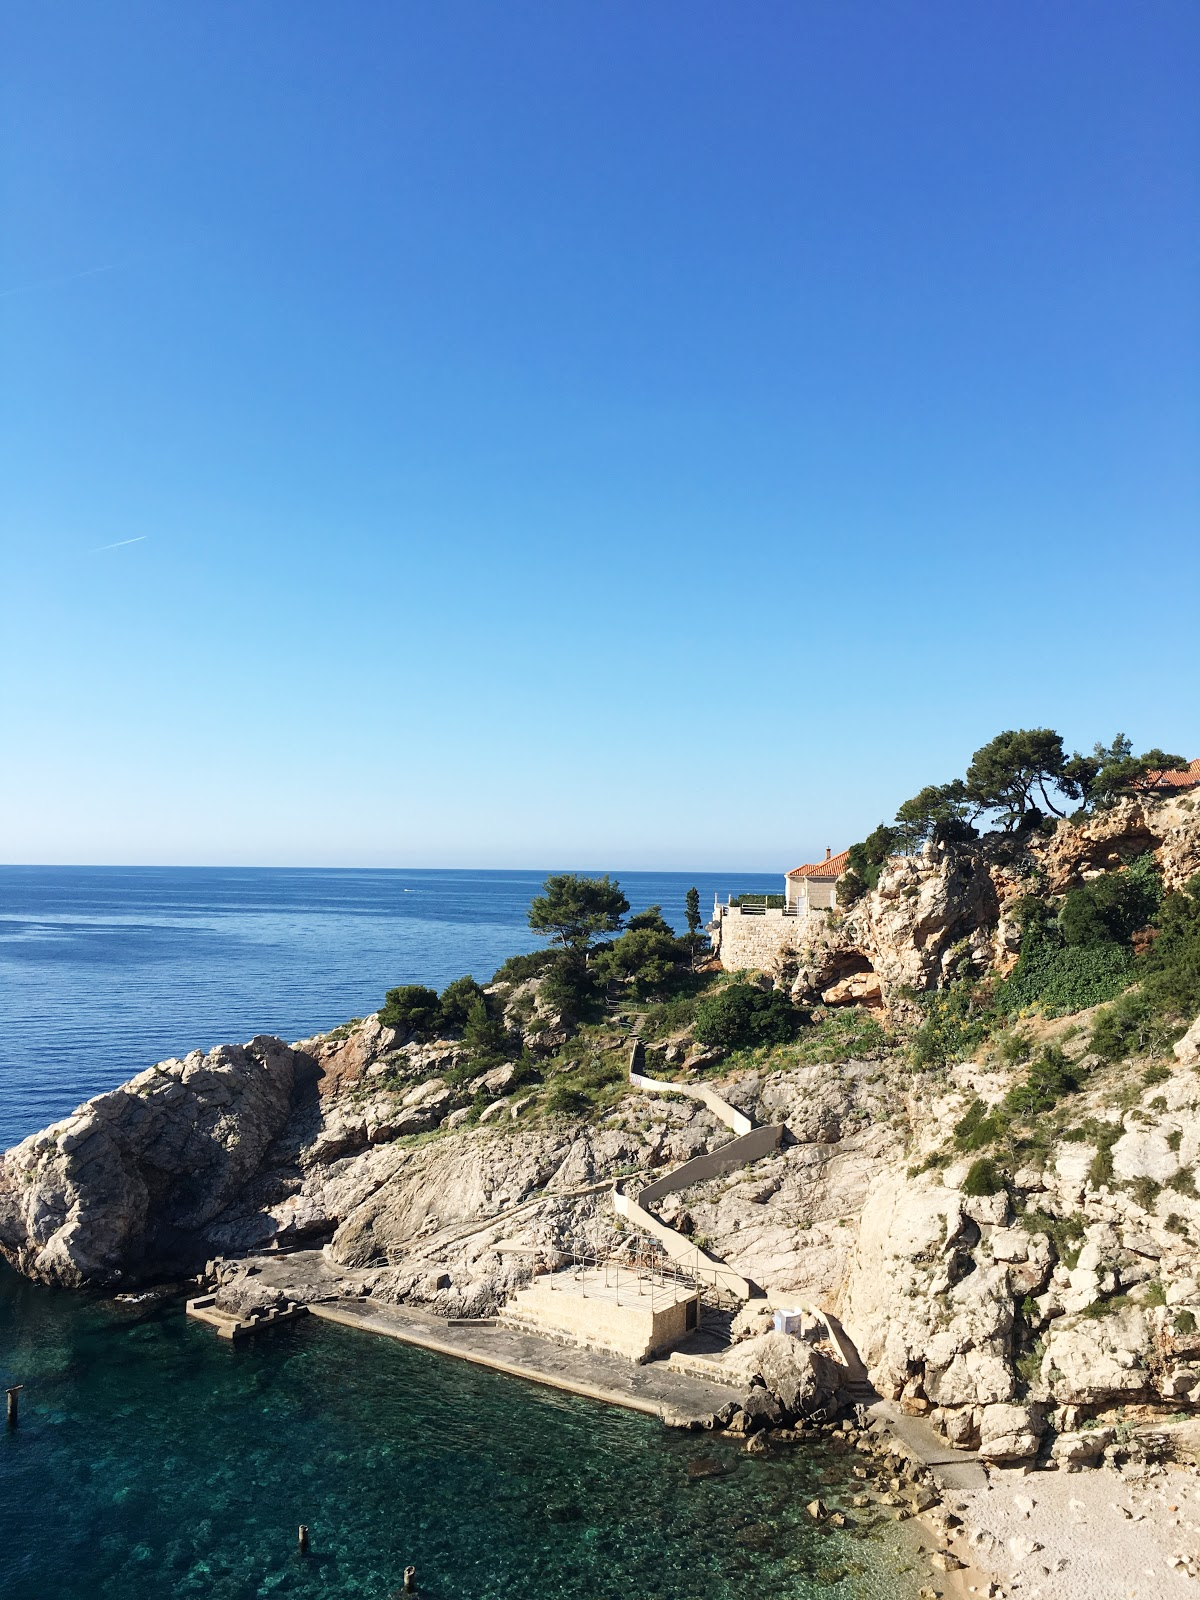 POSTCARDS FROM DUBROVNIK